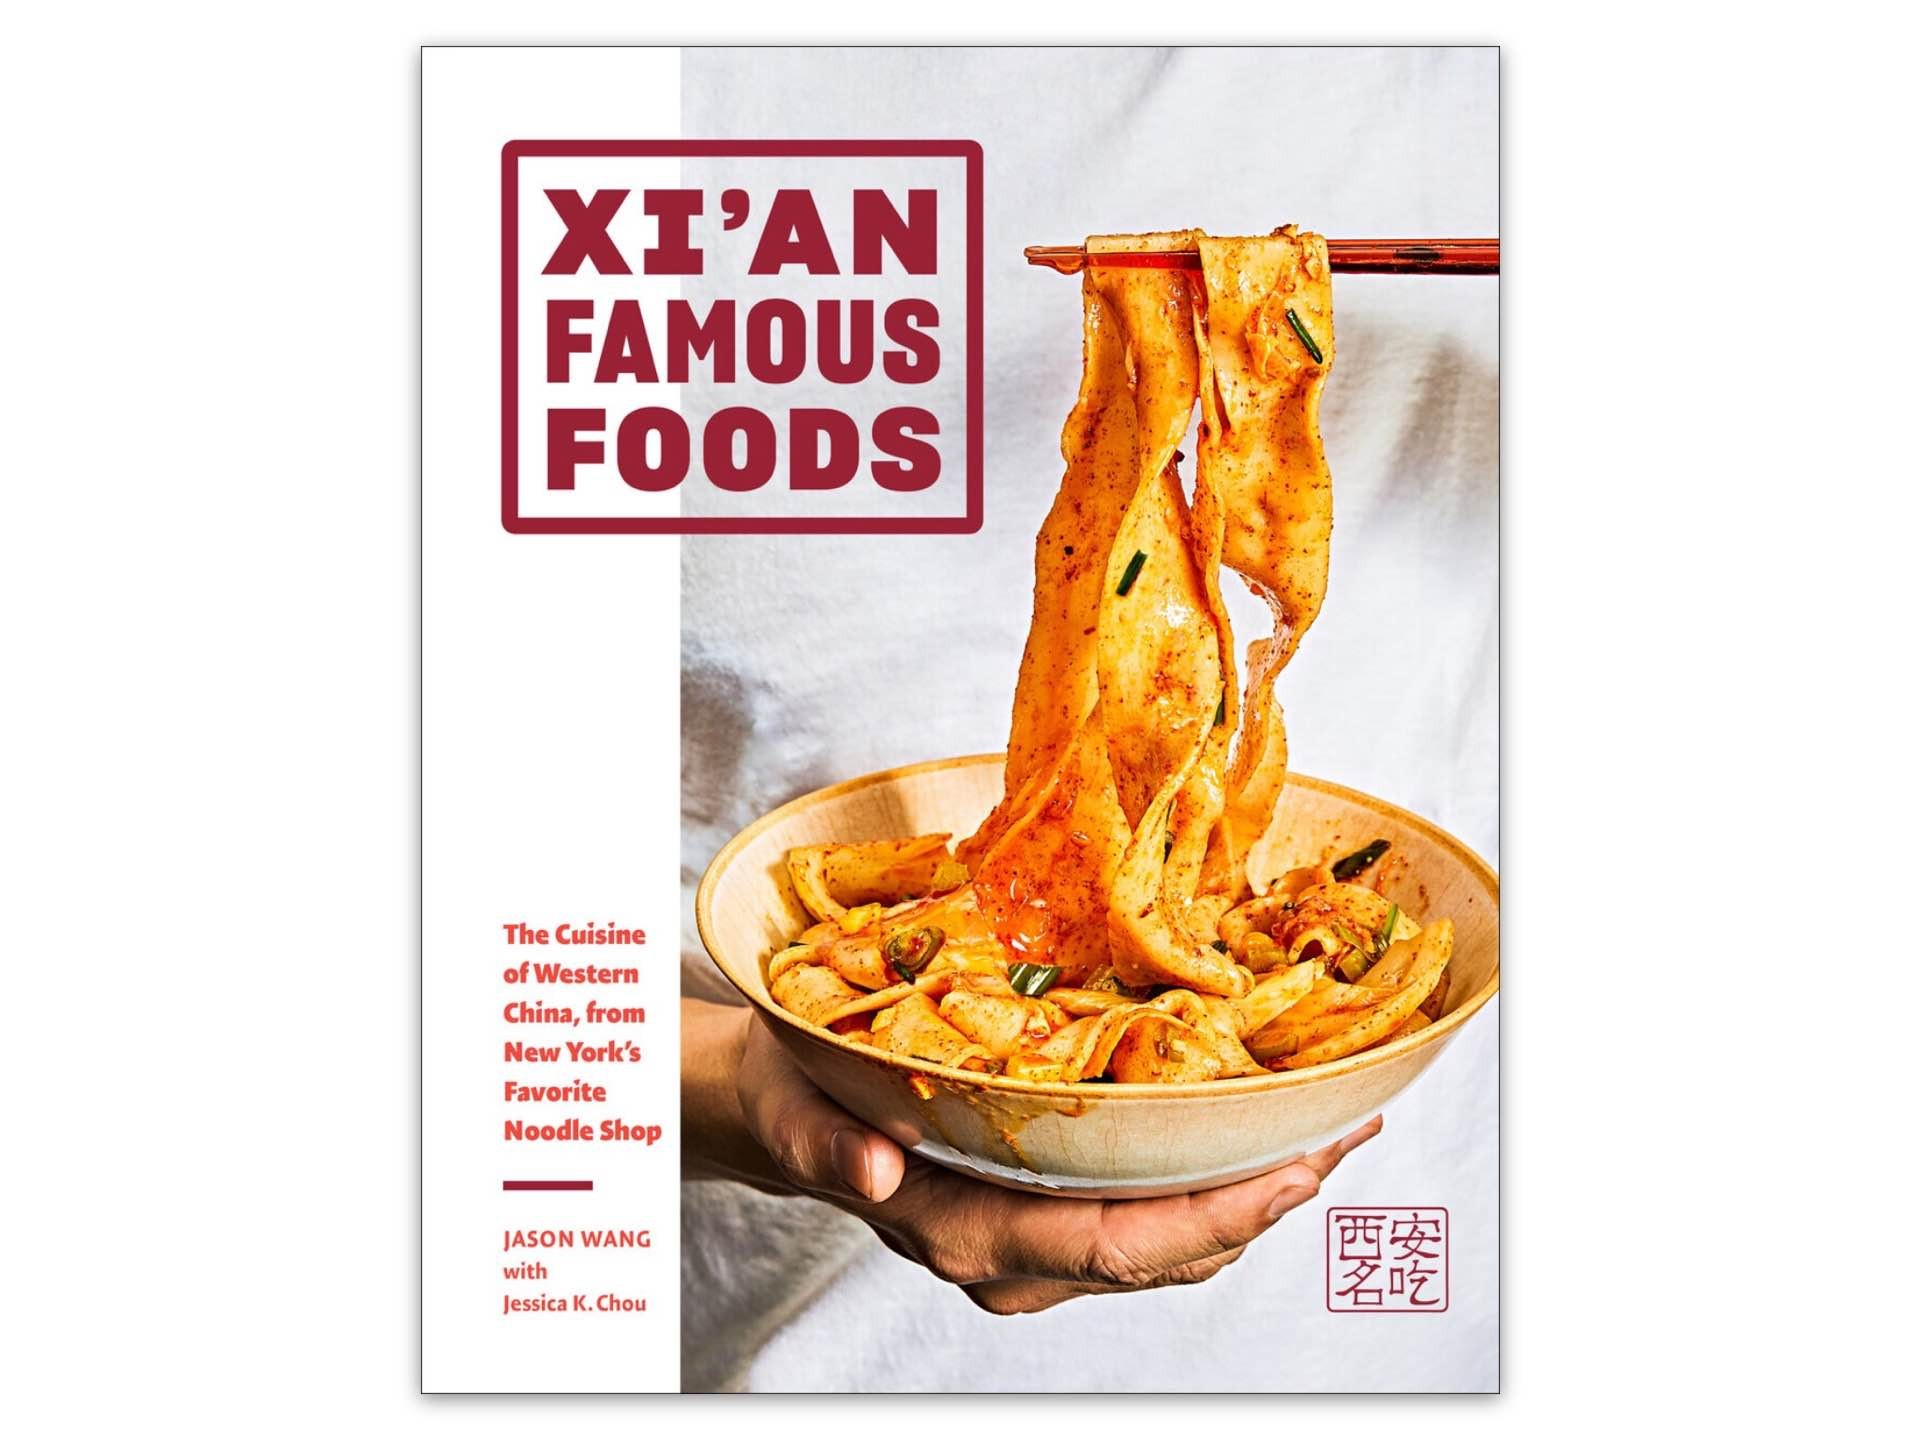 The Xi'an Famous Foods cookbook by Jason Wang. ($32 hardcover)